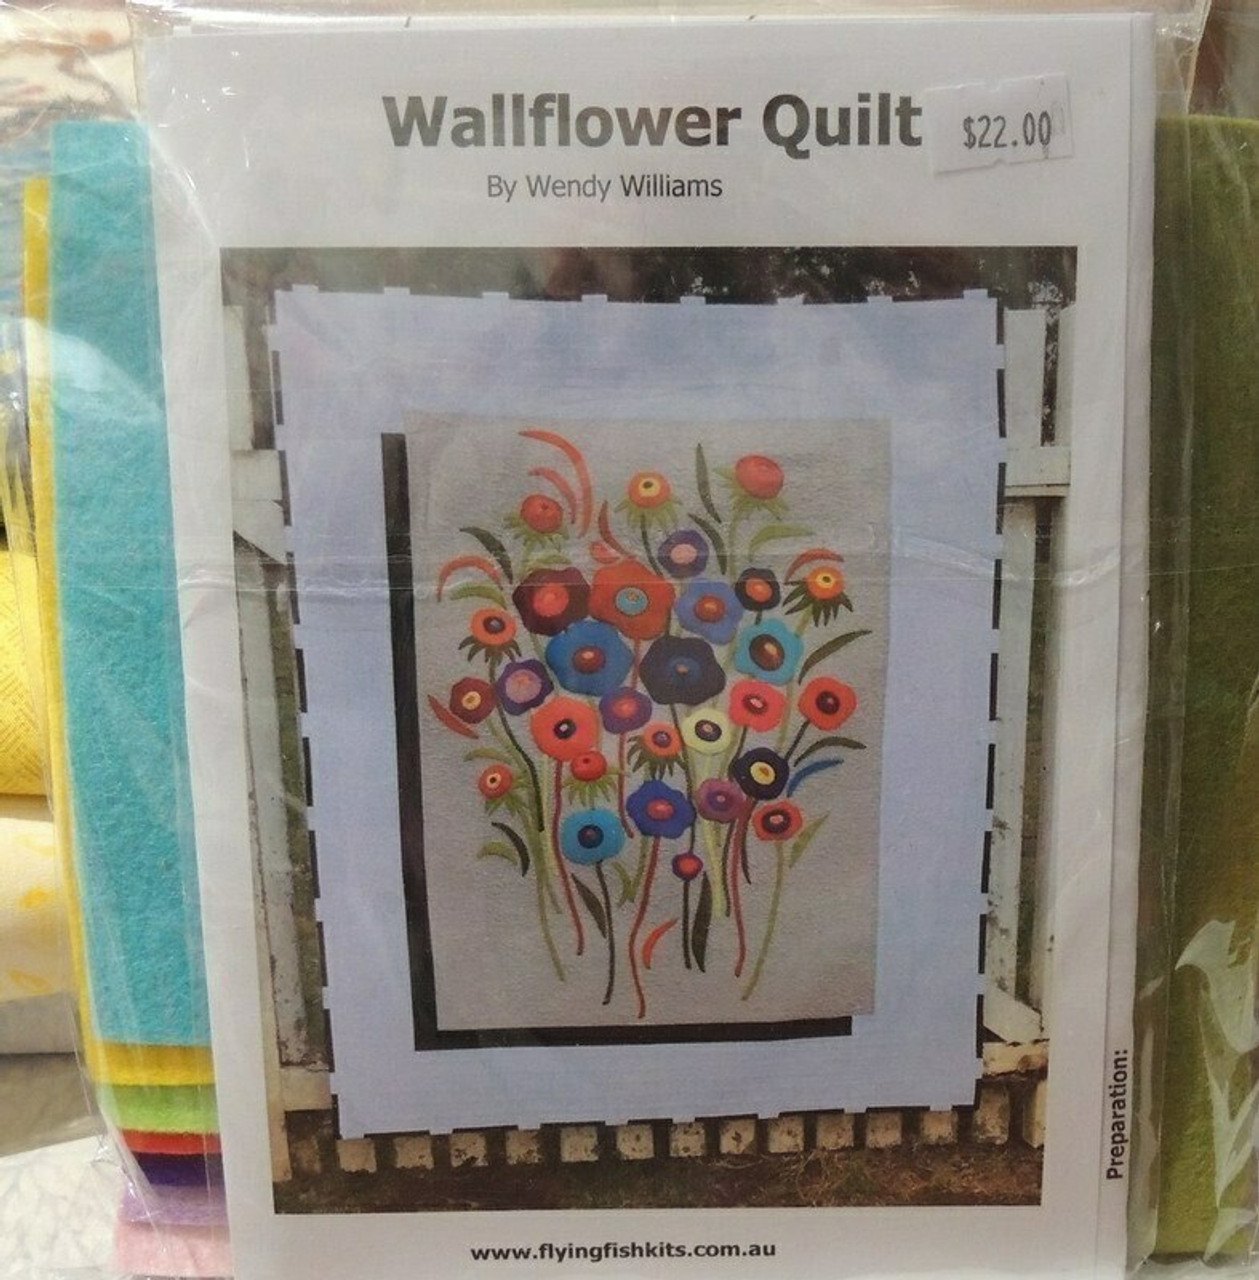 Wendy Williams : Wallflower Quilt - Wool Felt Kit